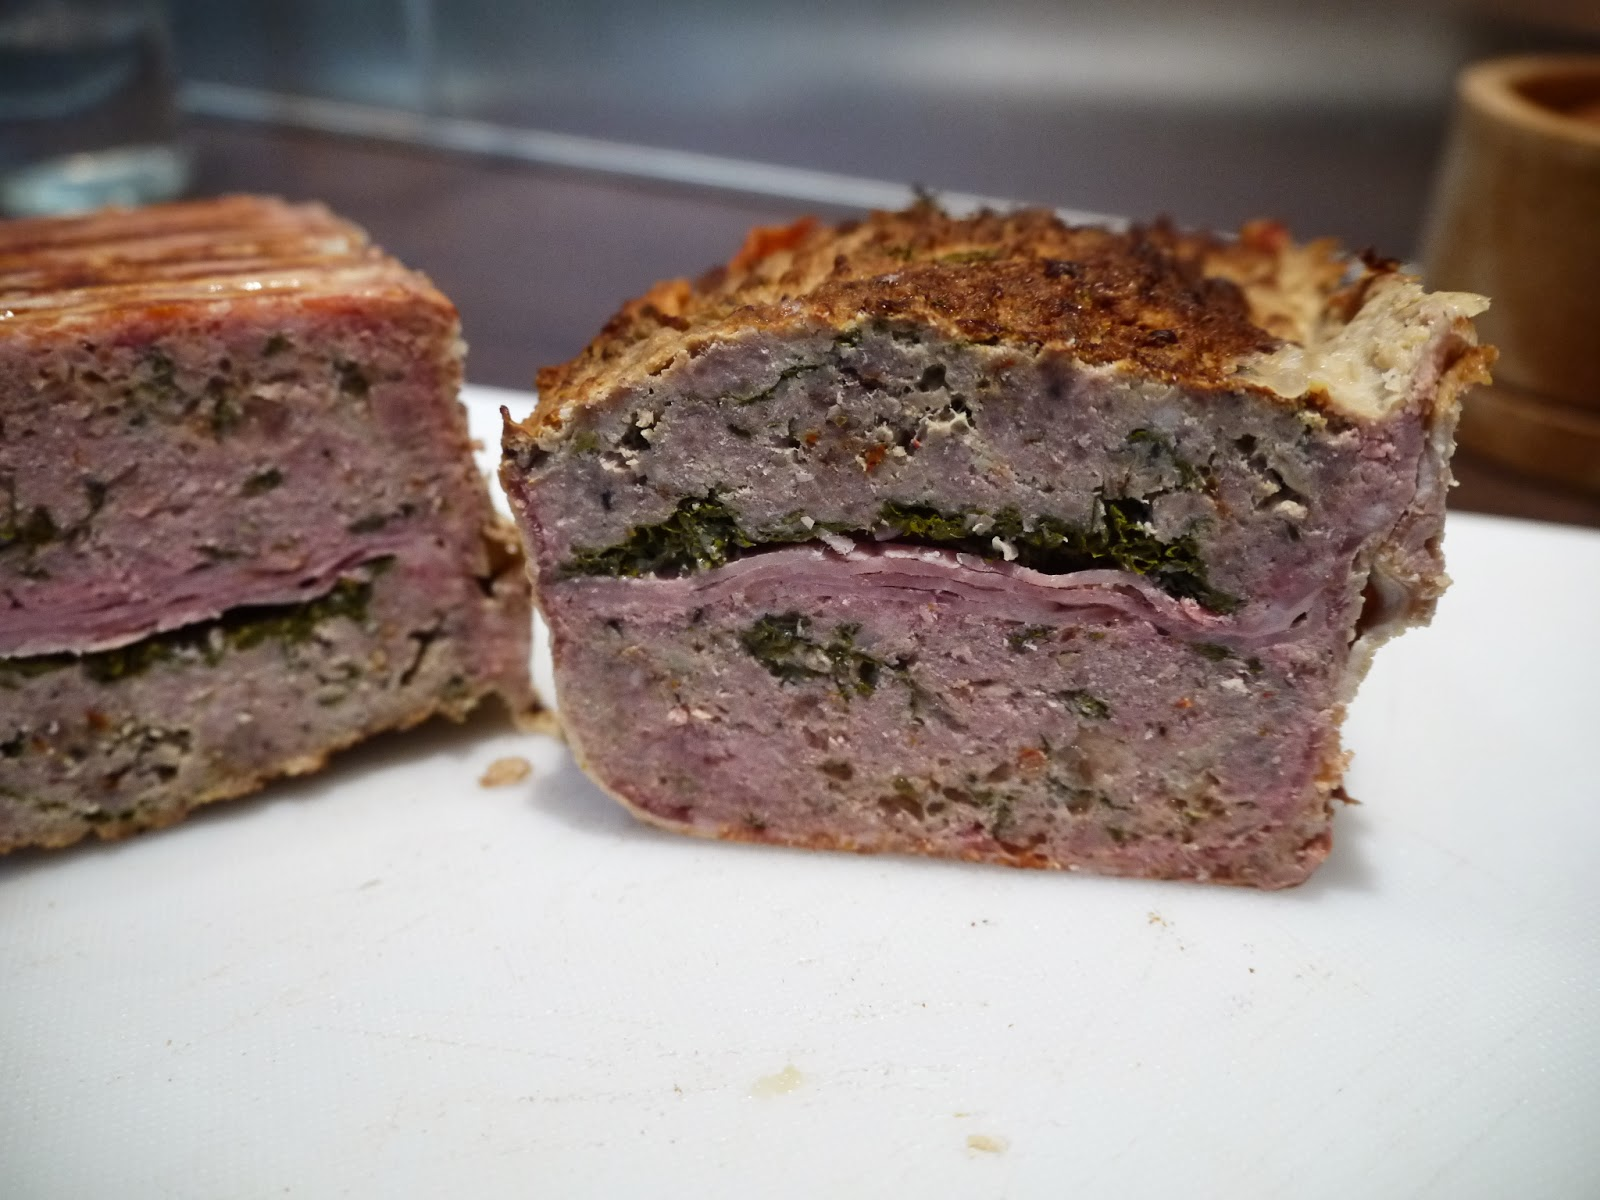 Meatloaf for picnic by Appetit Voyage